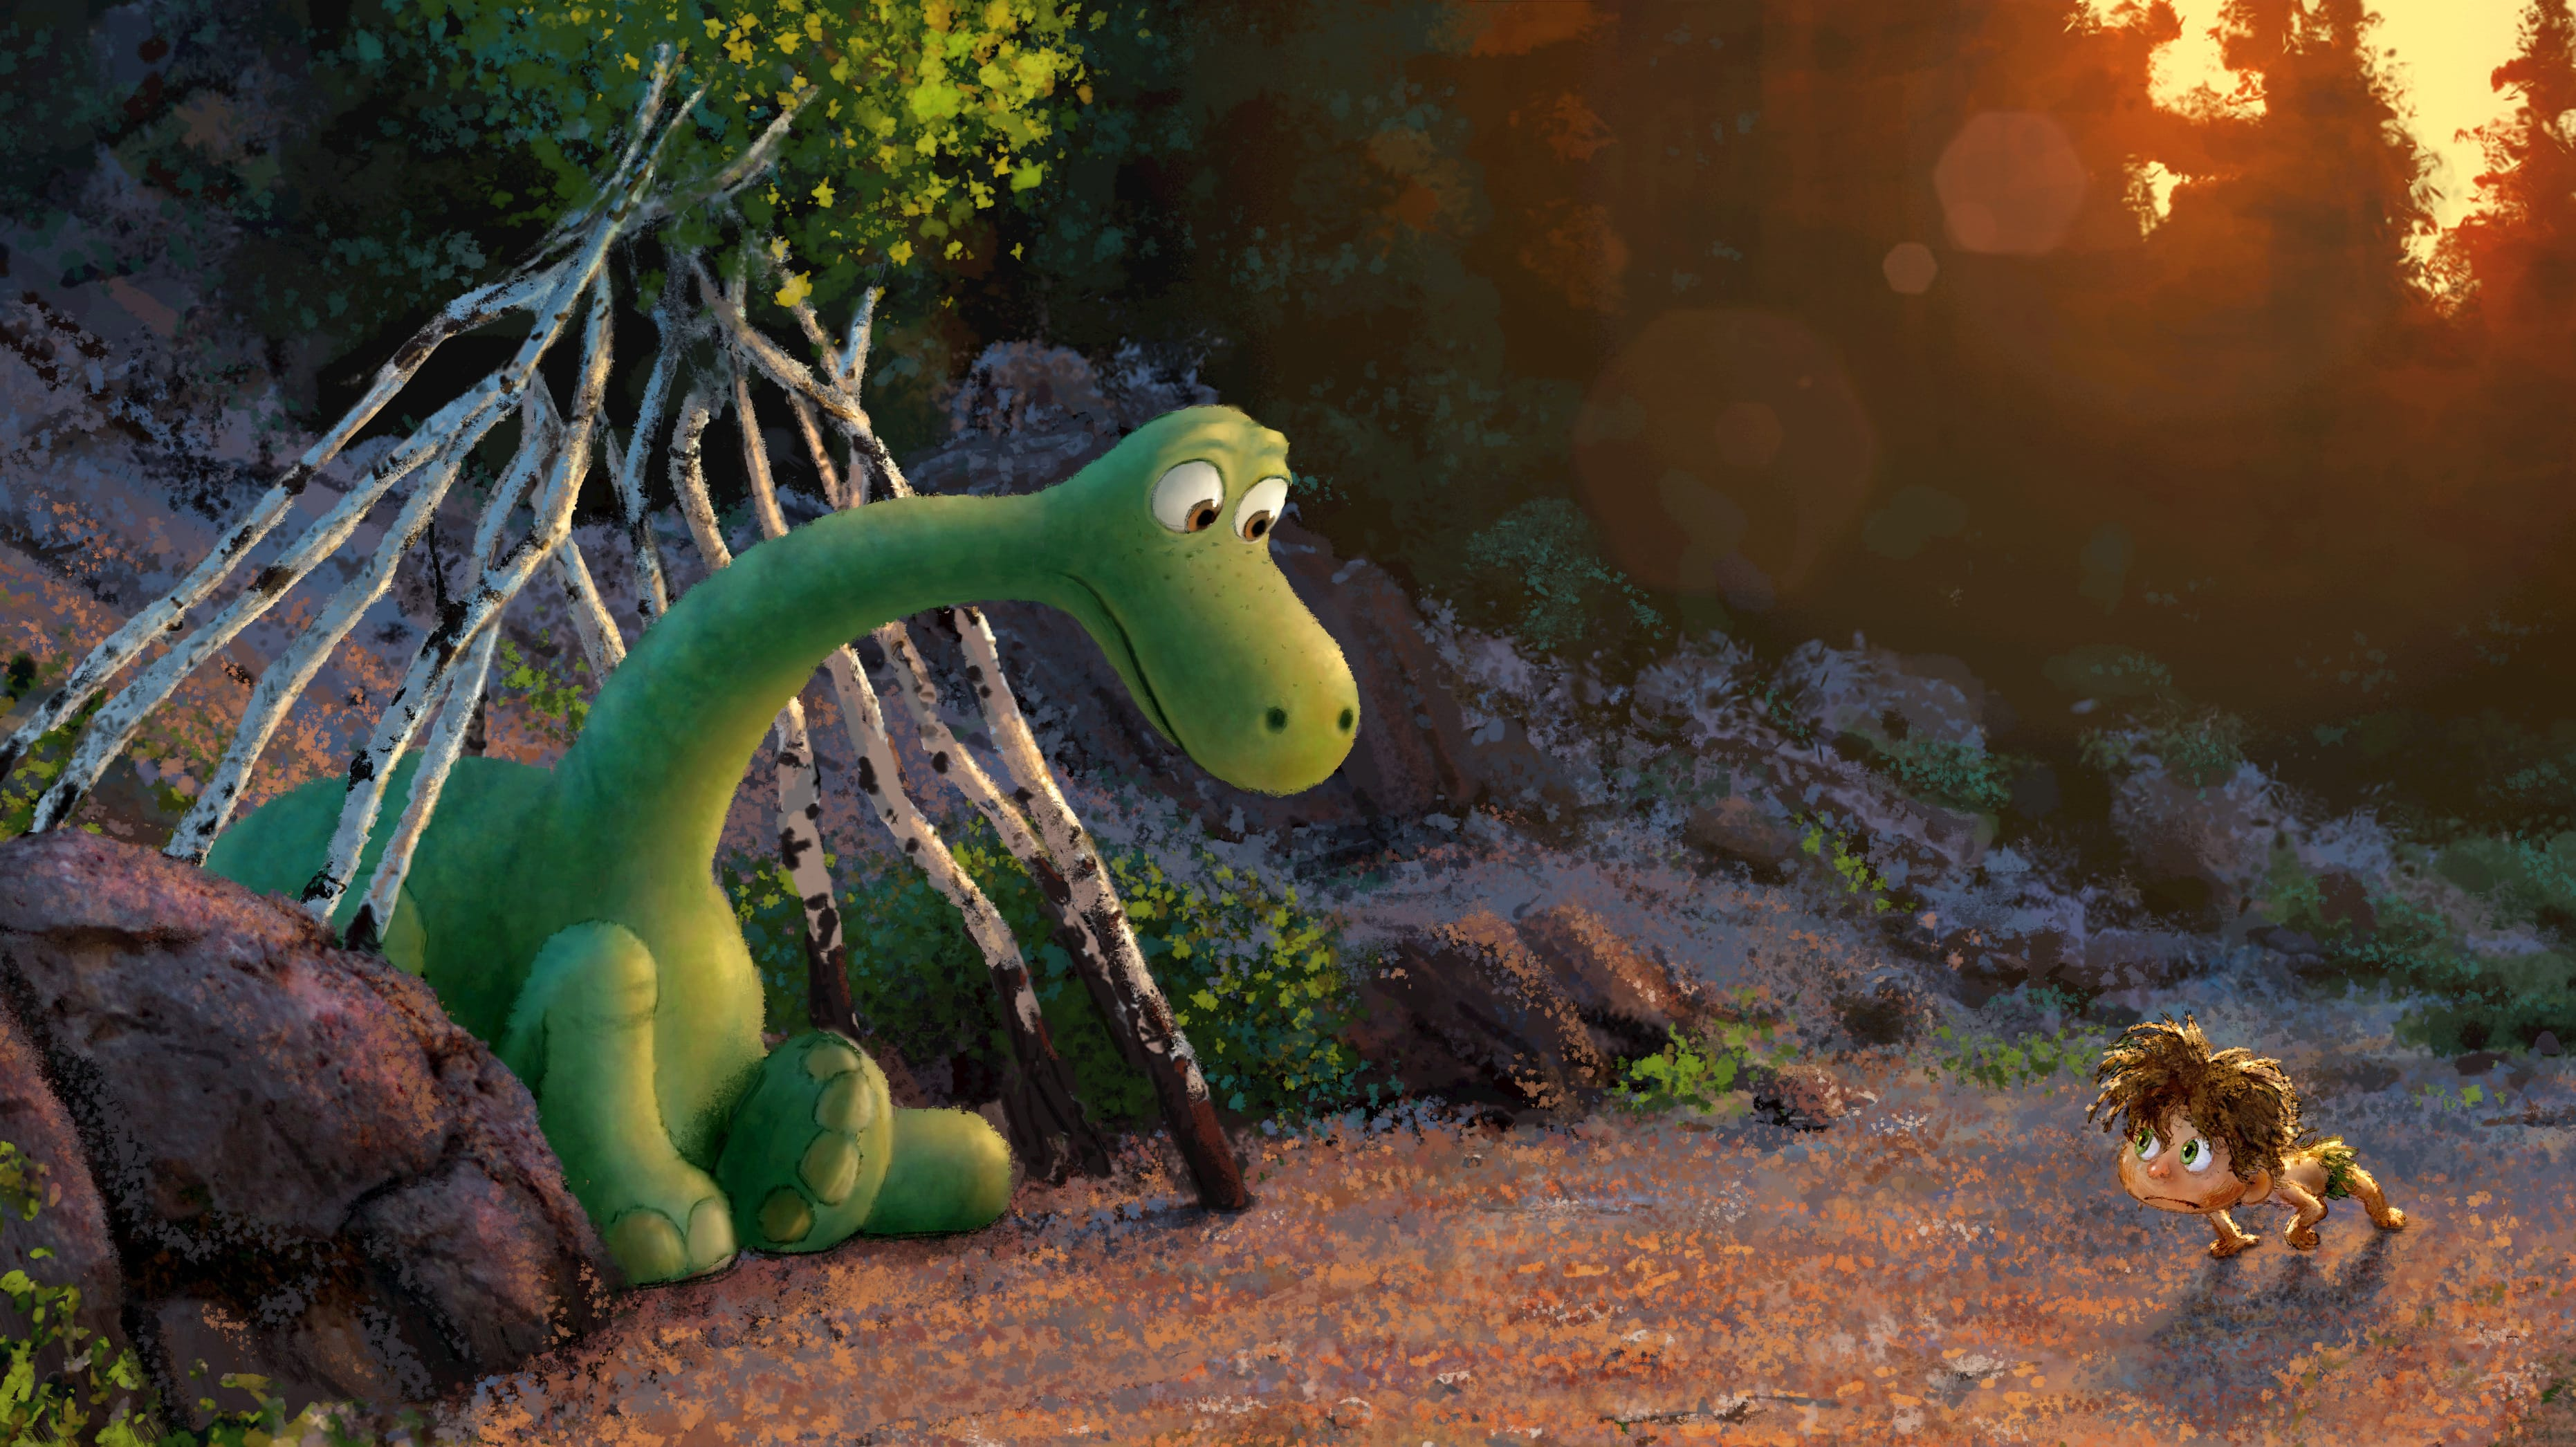 The Good Dinosaur Full hd wallpapers